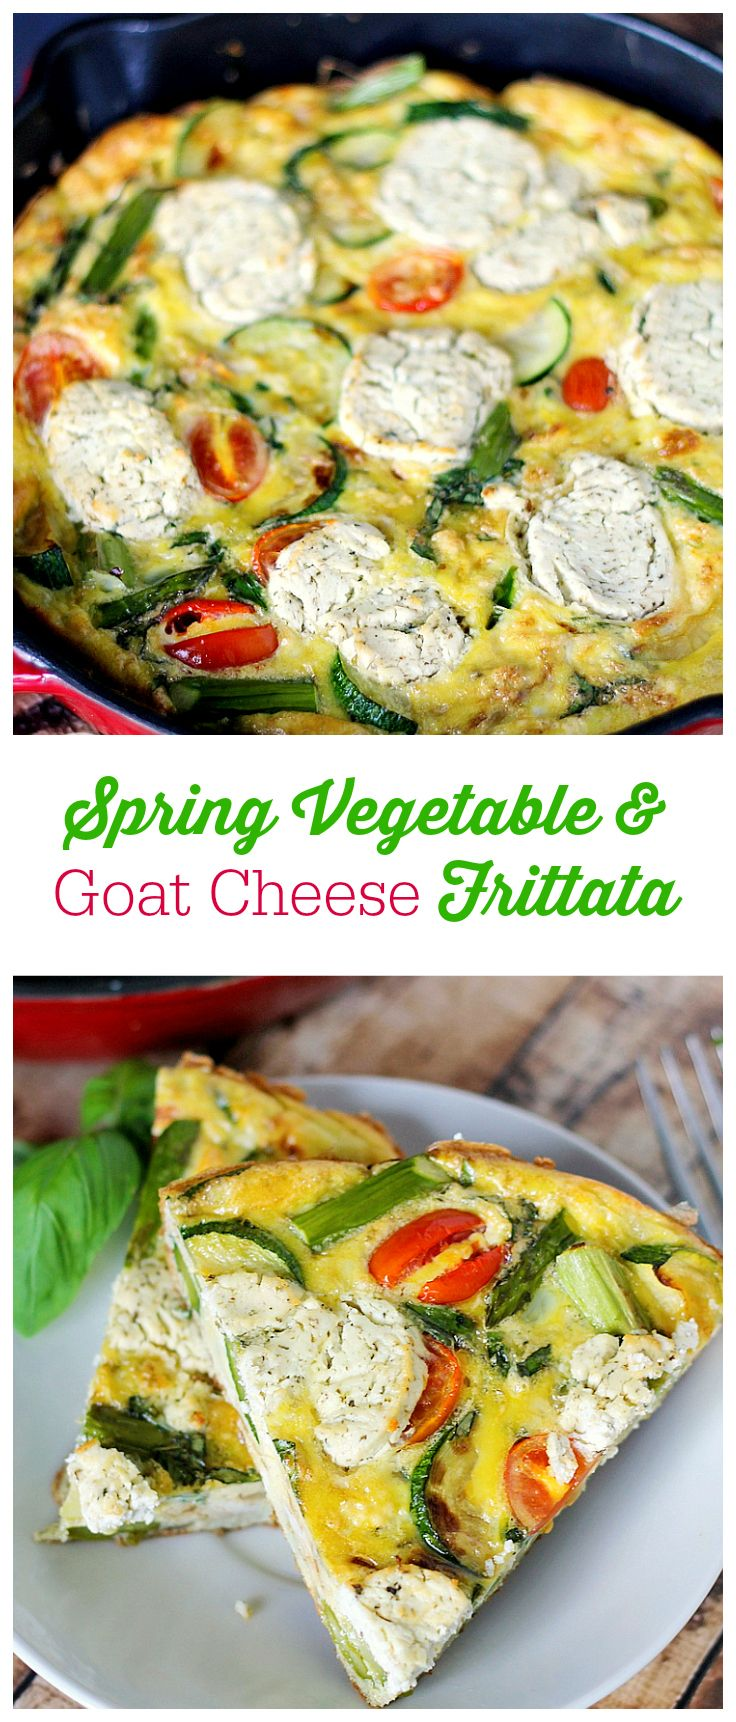 Spring Vegetable & Goat Cheese Frittata - Load up fresh zucchini ...